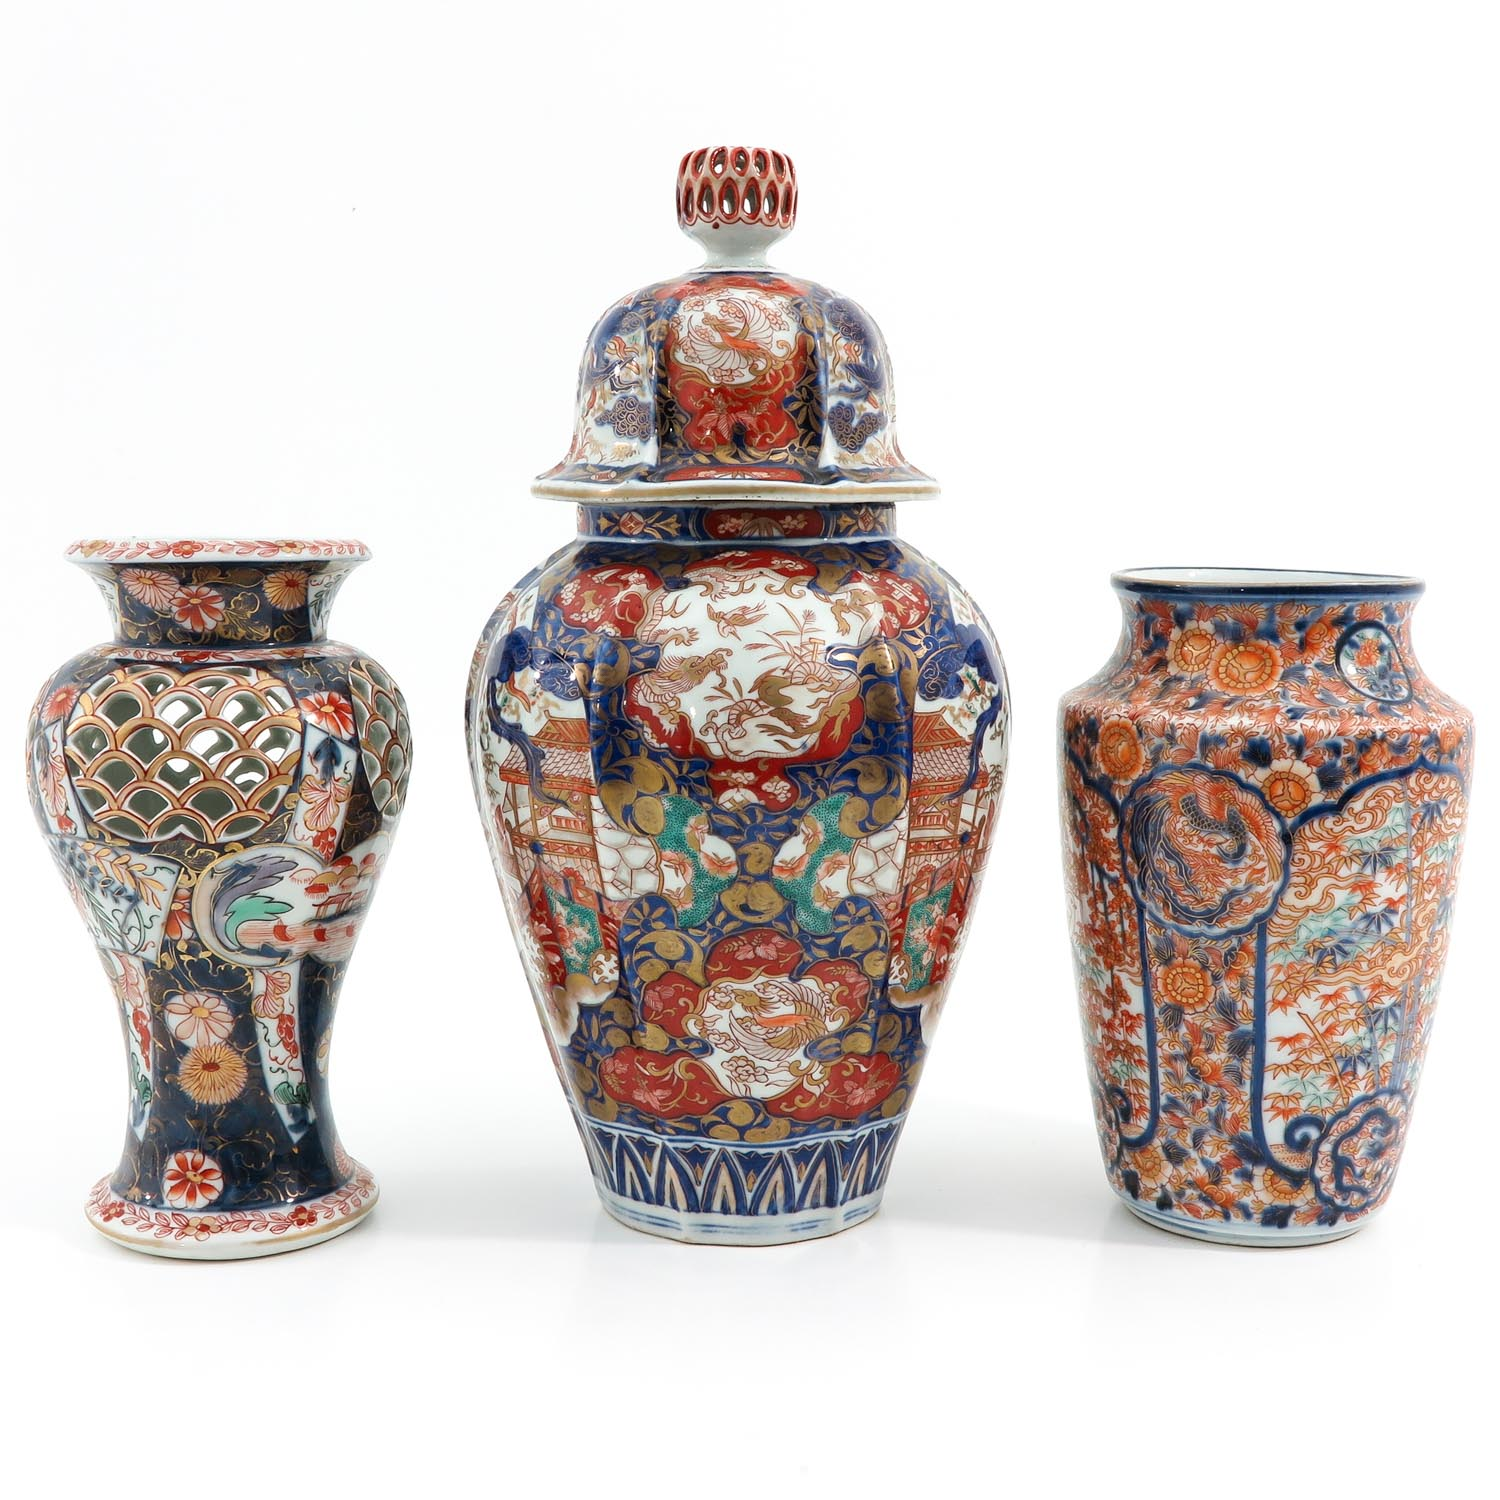 A Collection of 3 Imari Vases - Image 2 of 9